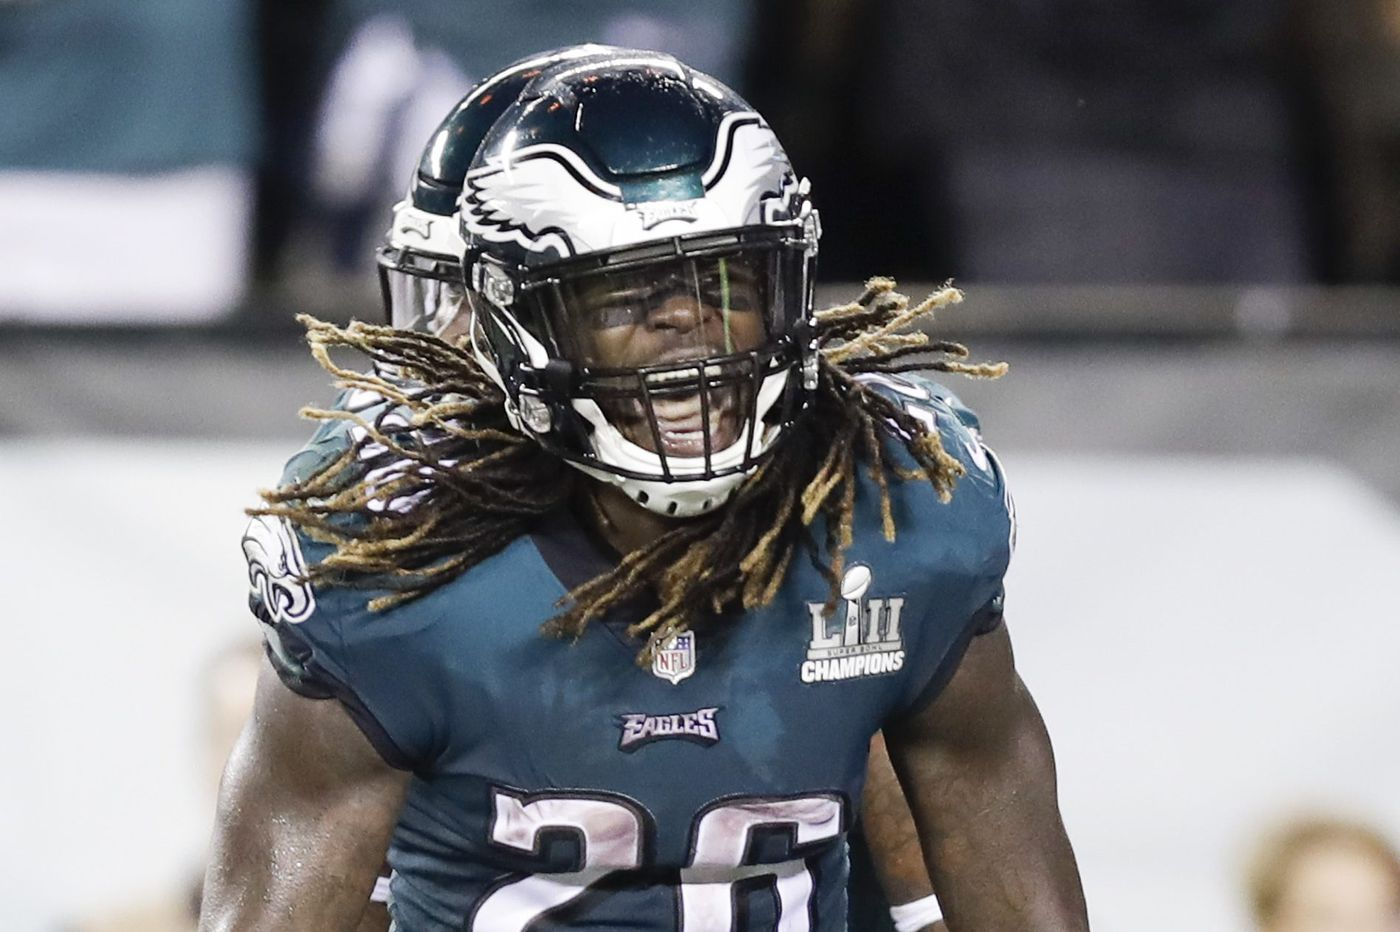 3f703945e44 Jay Ajayi is loving his drama-free life with the Eagles and without the  Dolphins | Mike Sielski